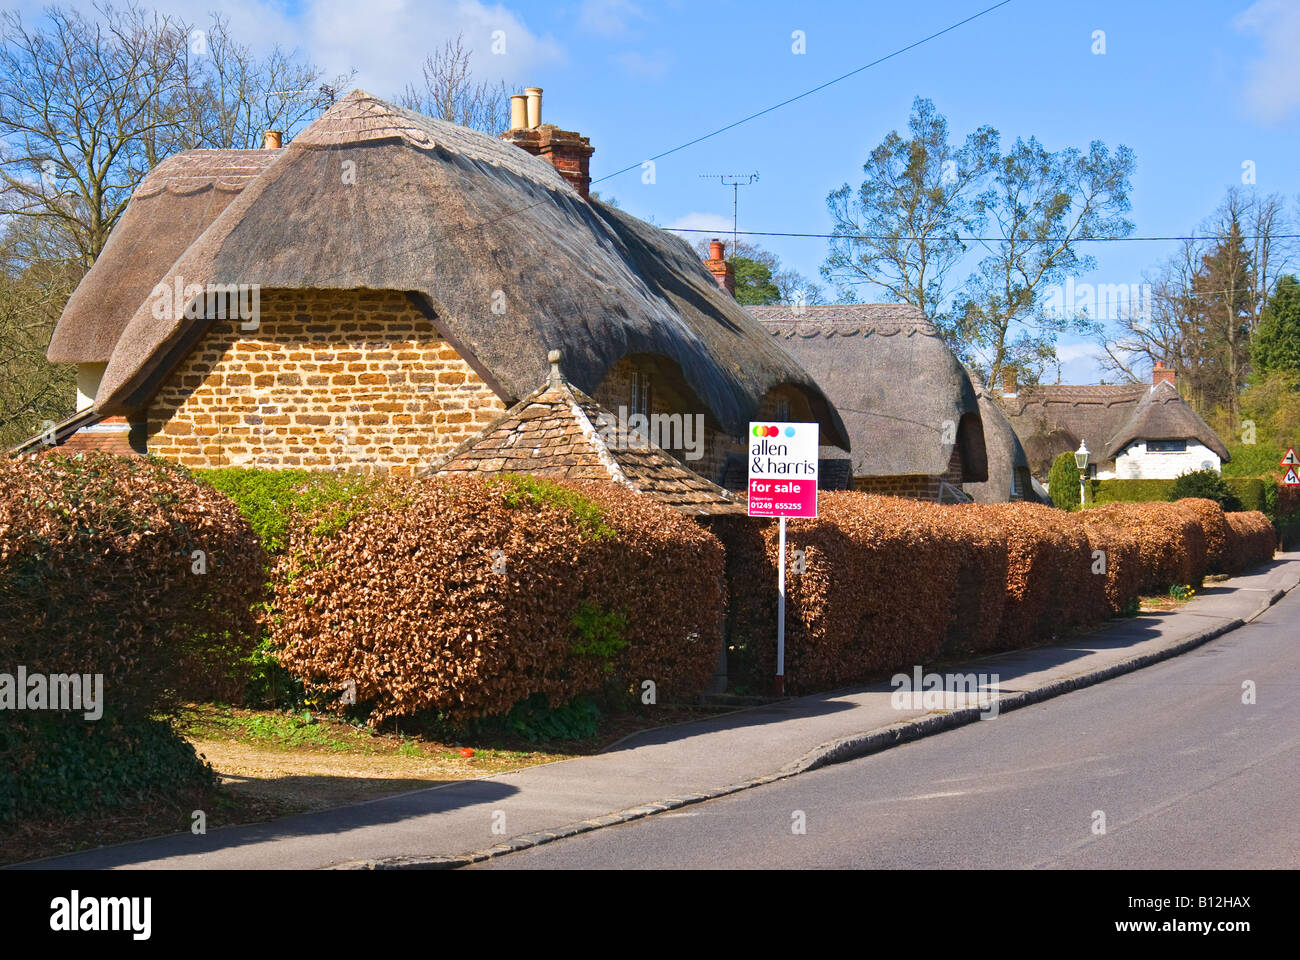 One Of A Row Attractive English Thatched Cottages For Sale In Sandy Lane Wiltshire England UK EU